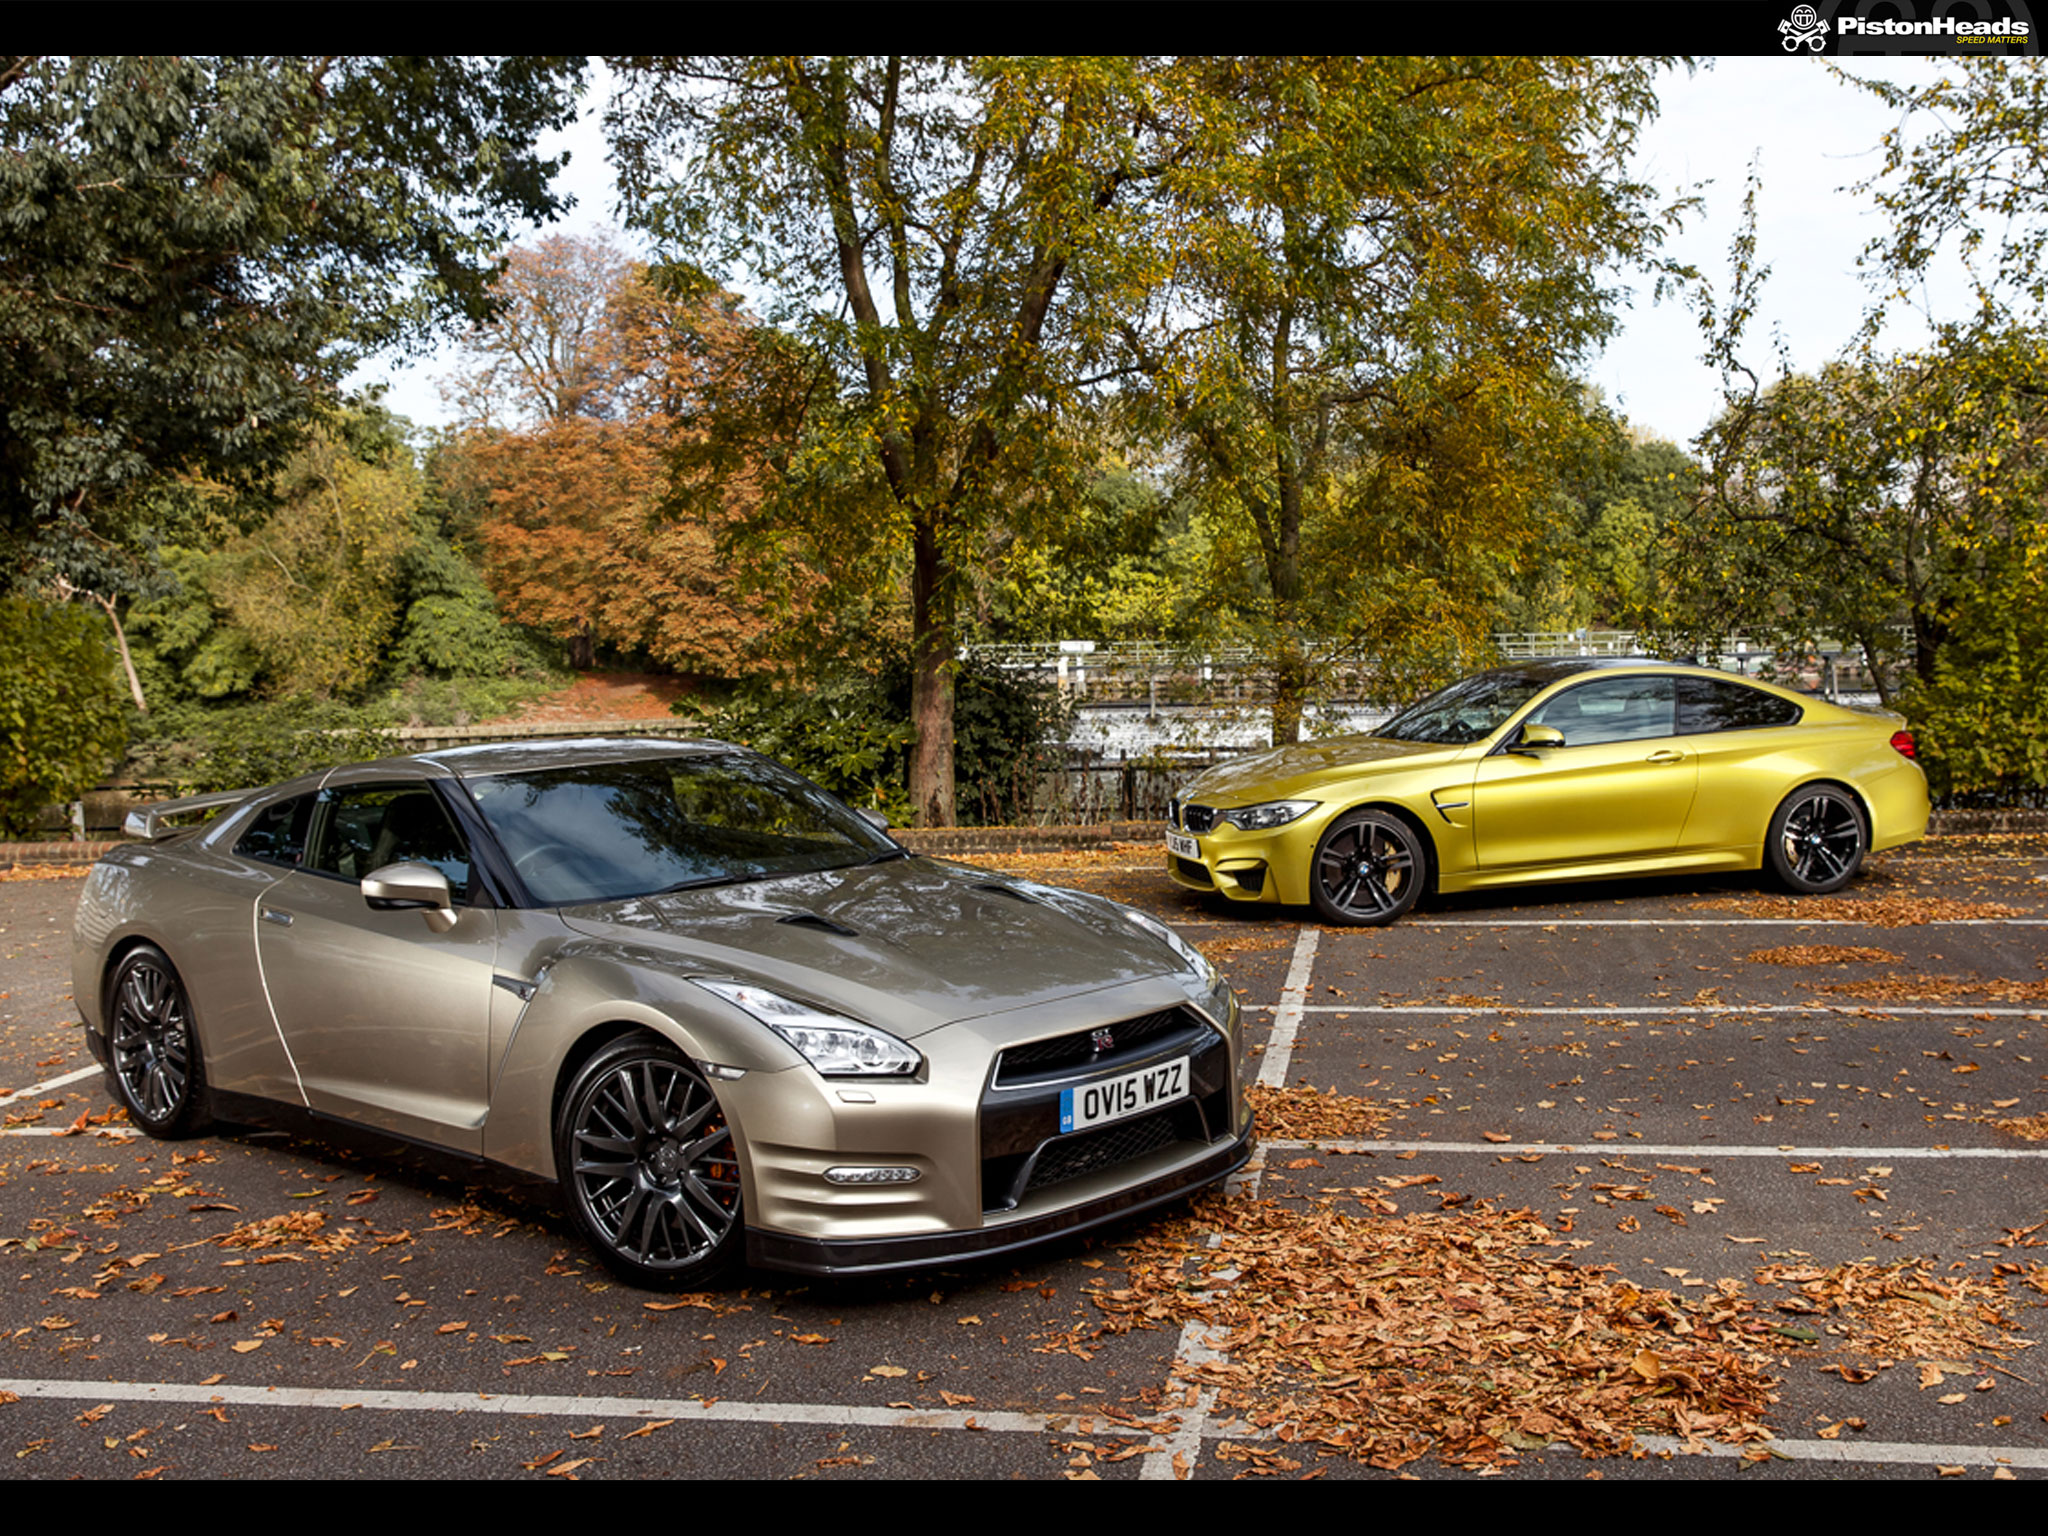 BMW M4 vs. Nissan GT-R: Pic Of The Week | PistonHeads